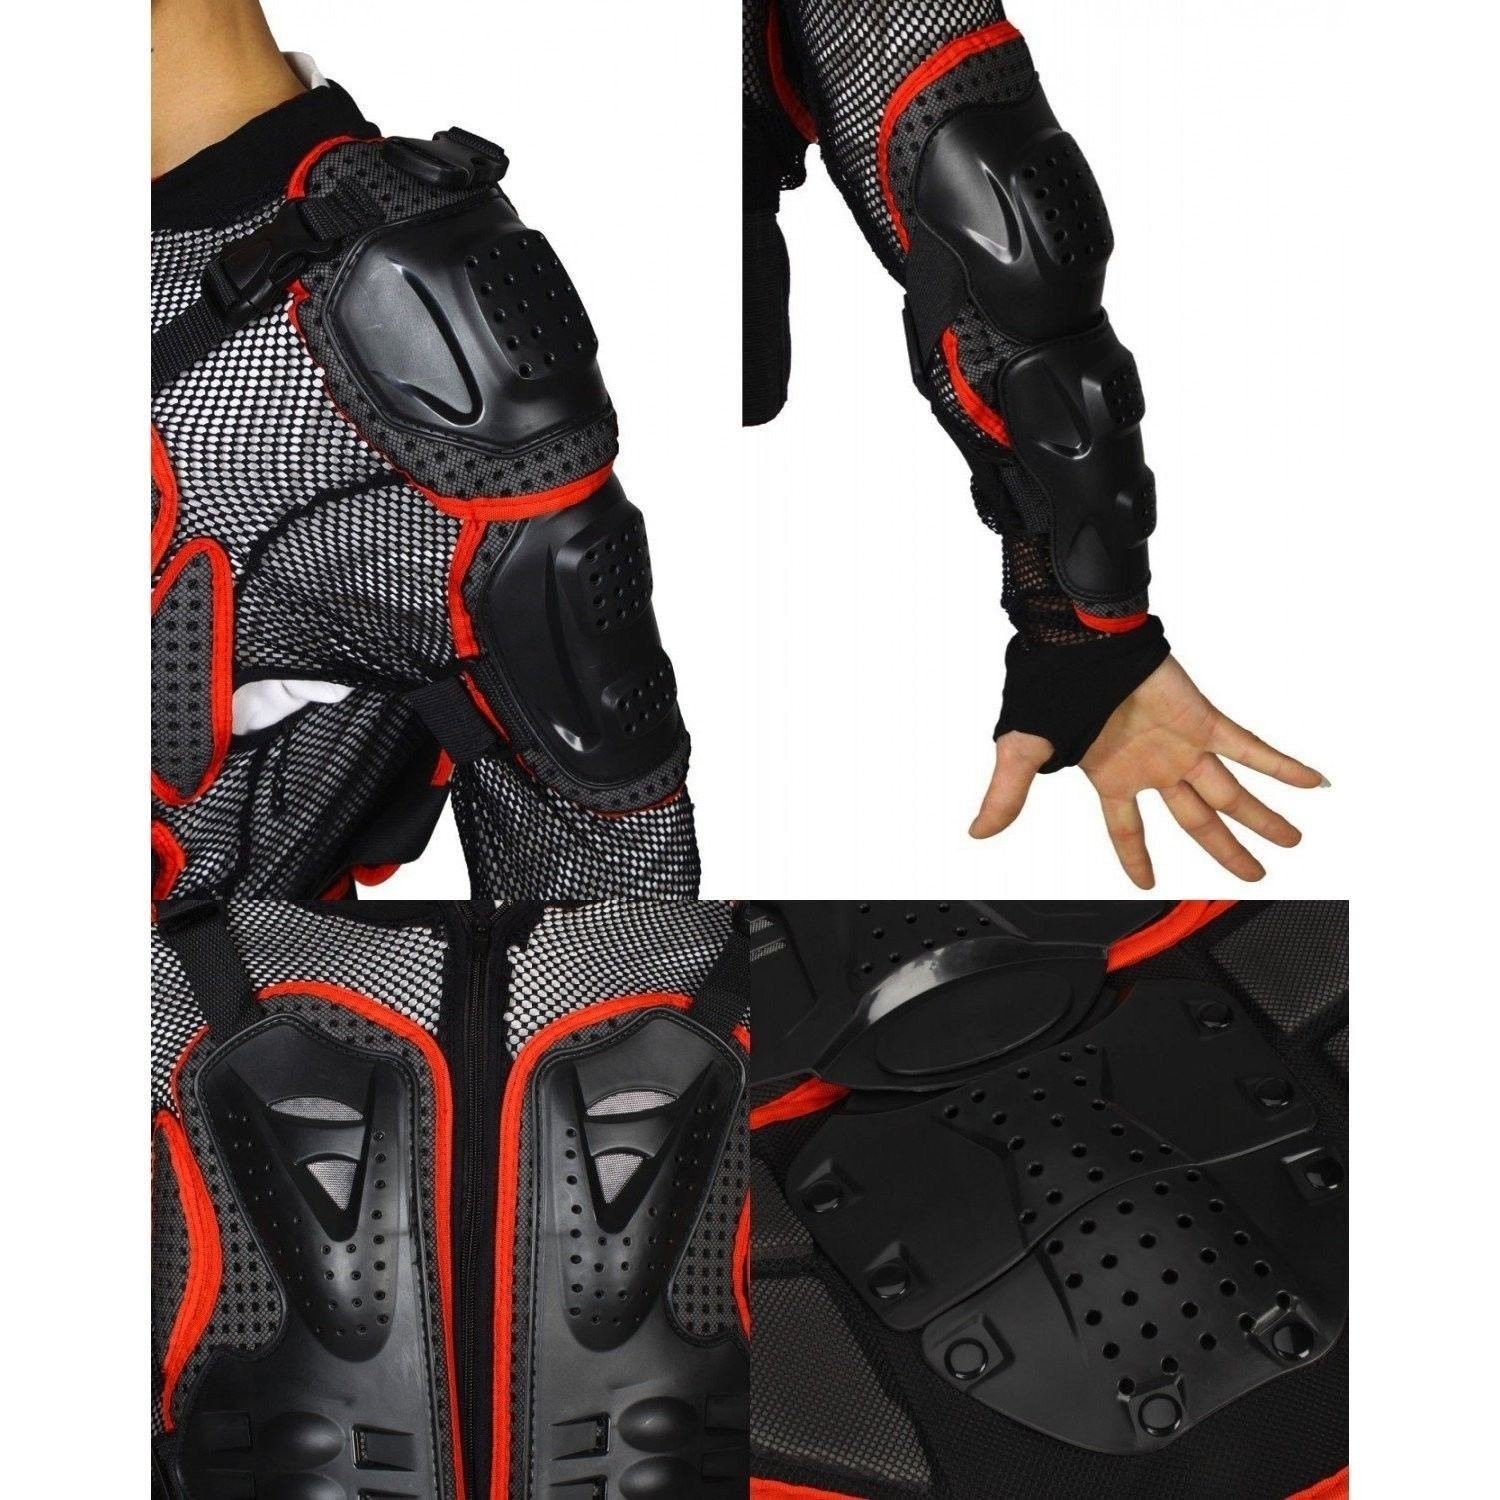 Size M red Motorcycle Parts Full Body Protective Jacket Spine Chest Gear Armor Off Road Protector Motorcross Racing Clothing Fit For 1999 2000 2001 2002 2003 2004 2005 2006 Suzuki HAYABUSA/GSXR1300 2007